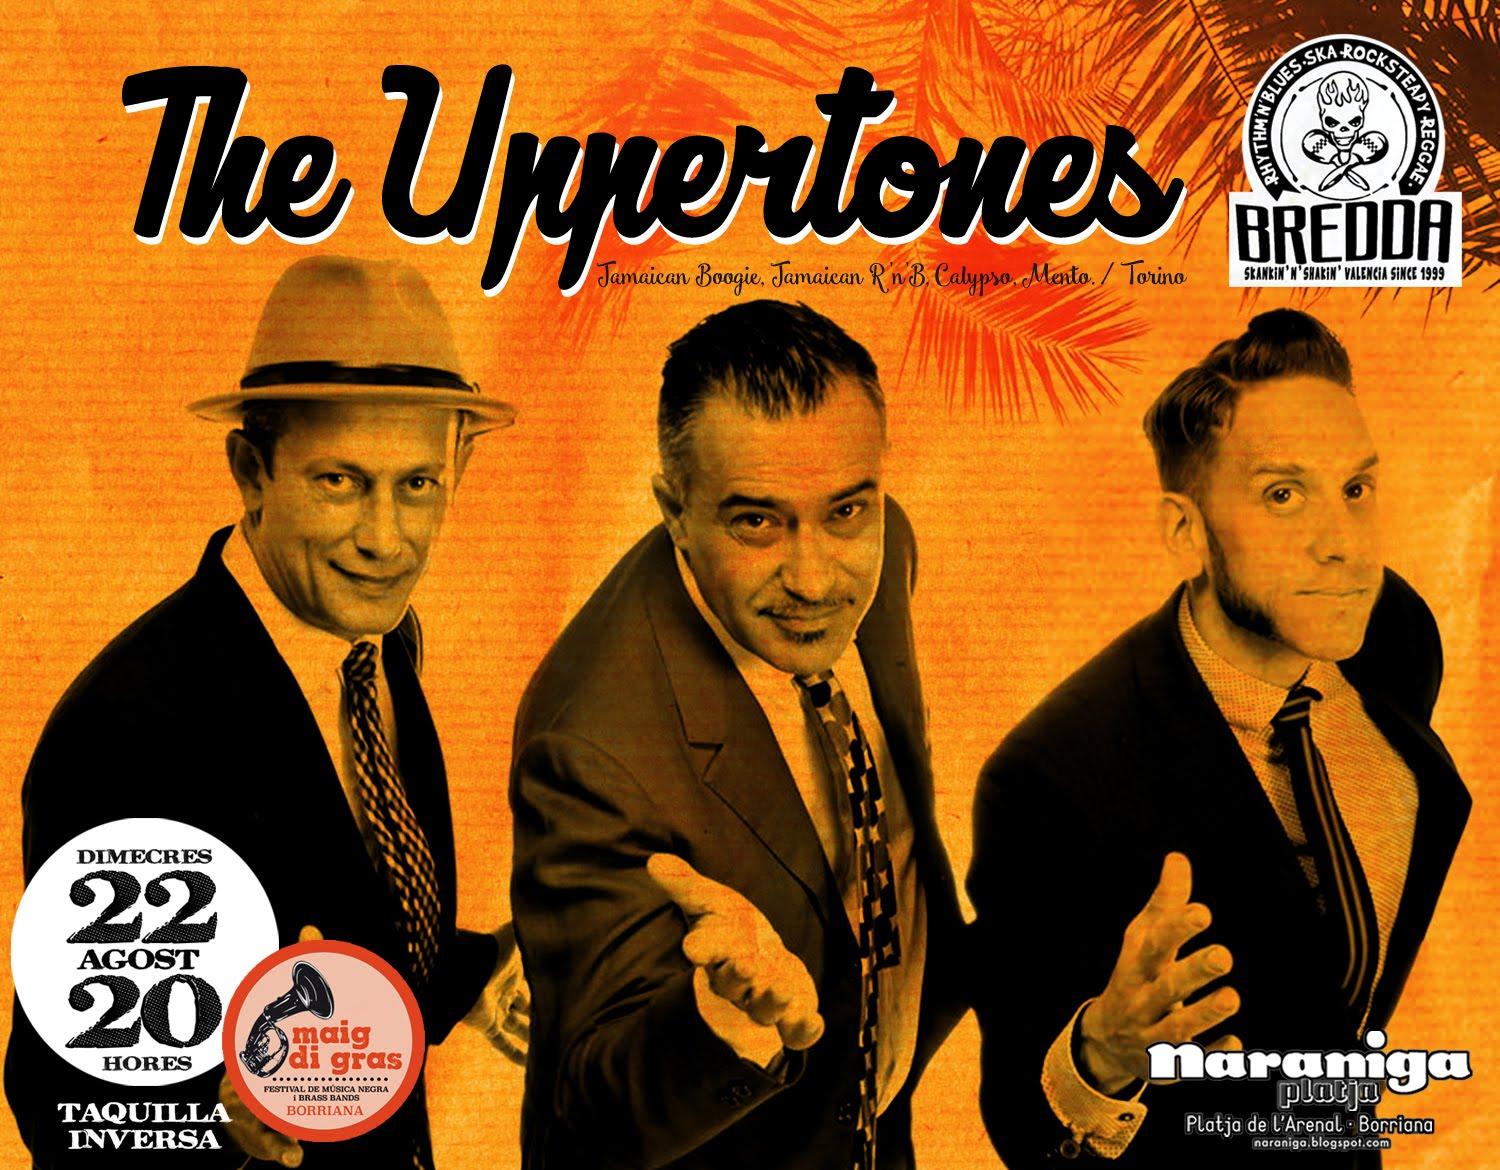 THE UPPERTONE / DIMARTS 22 AGOST · 20 H